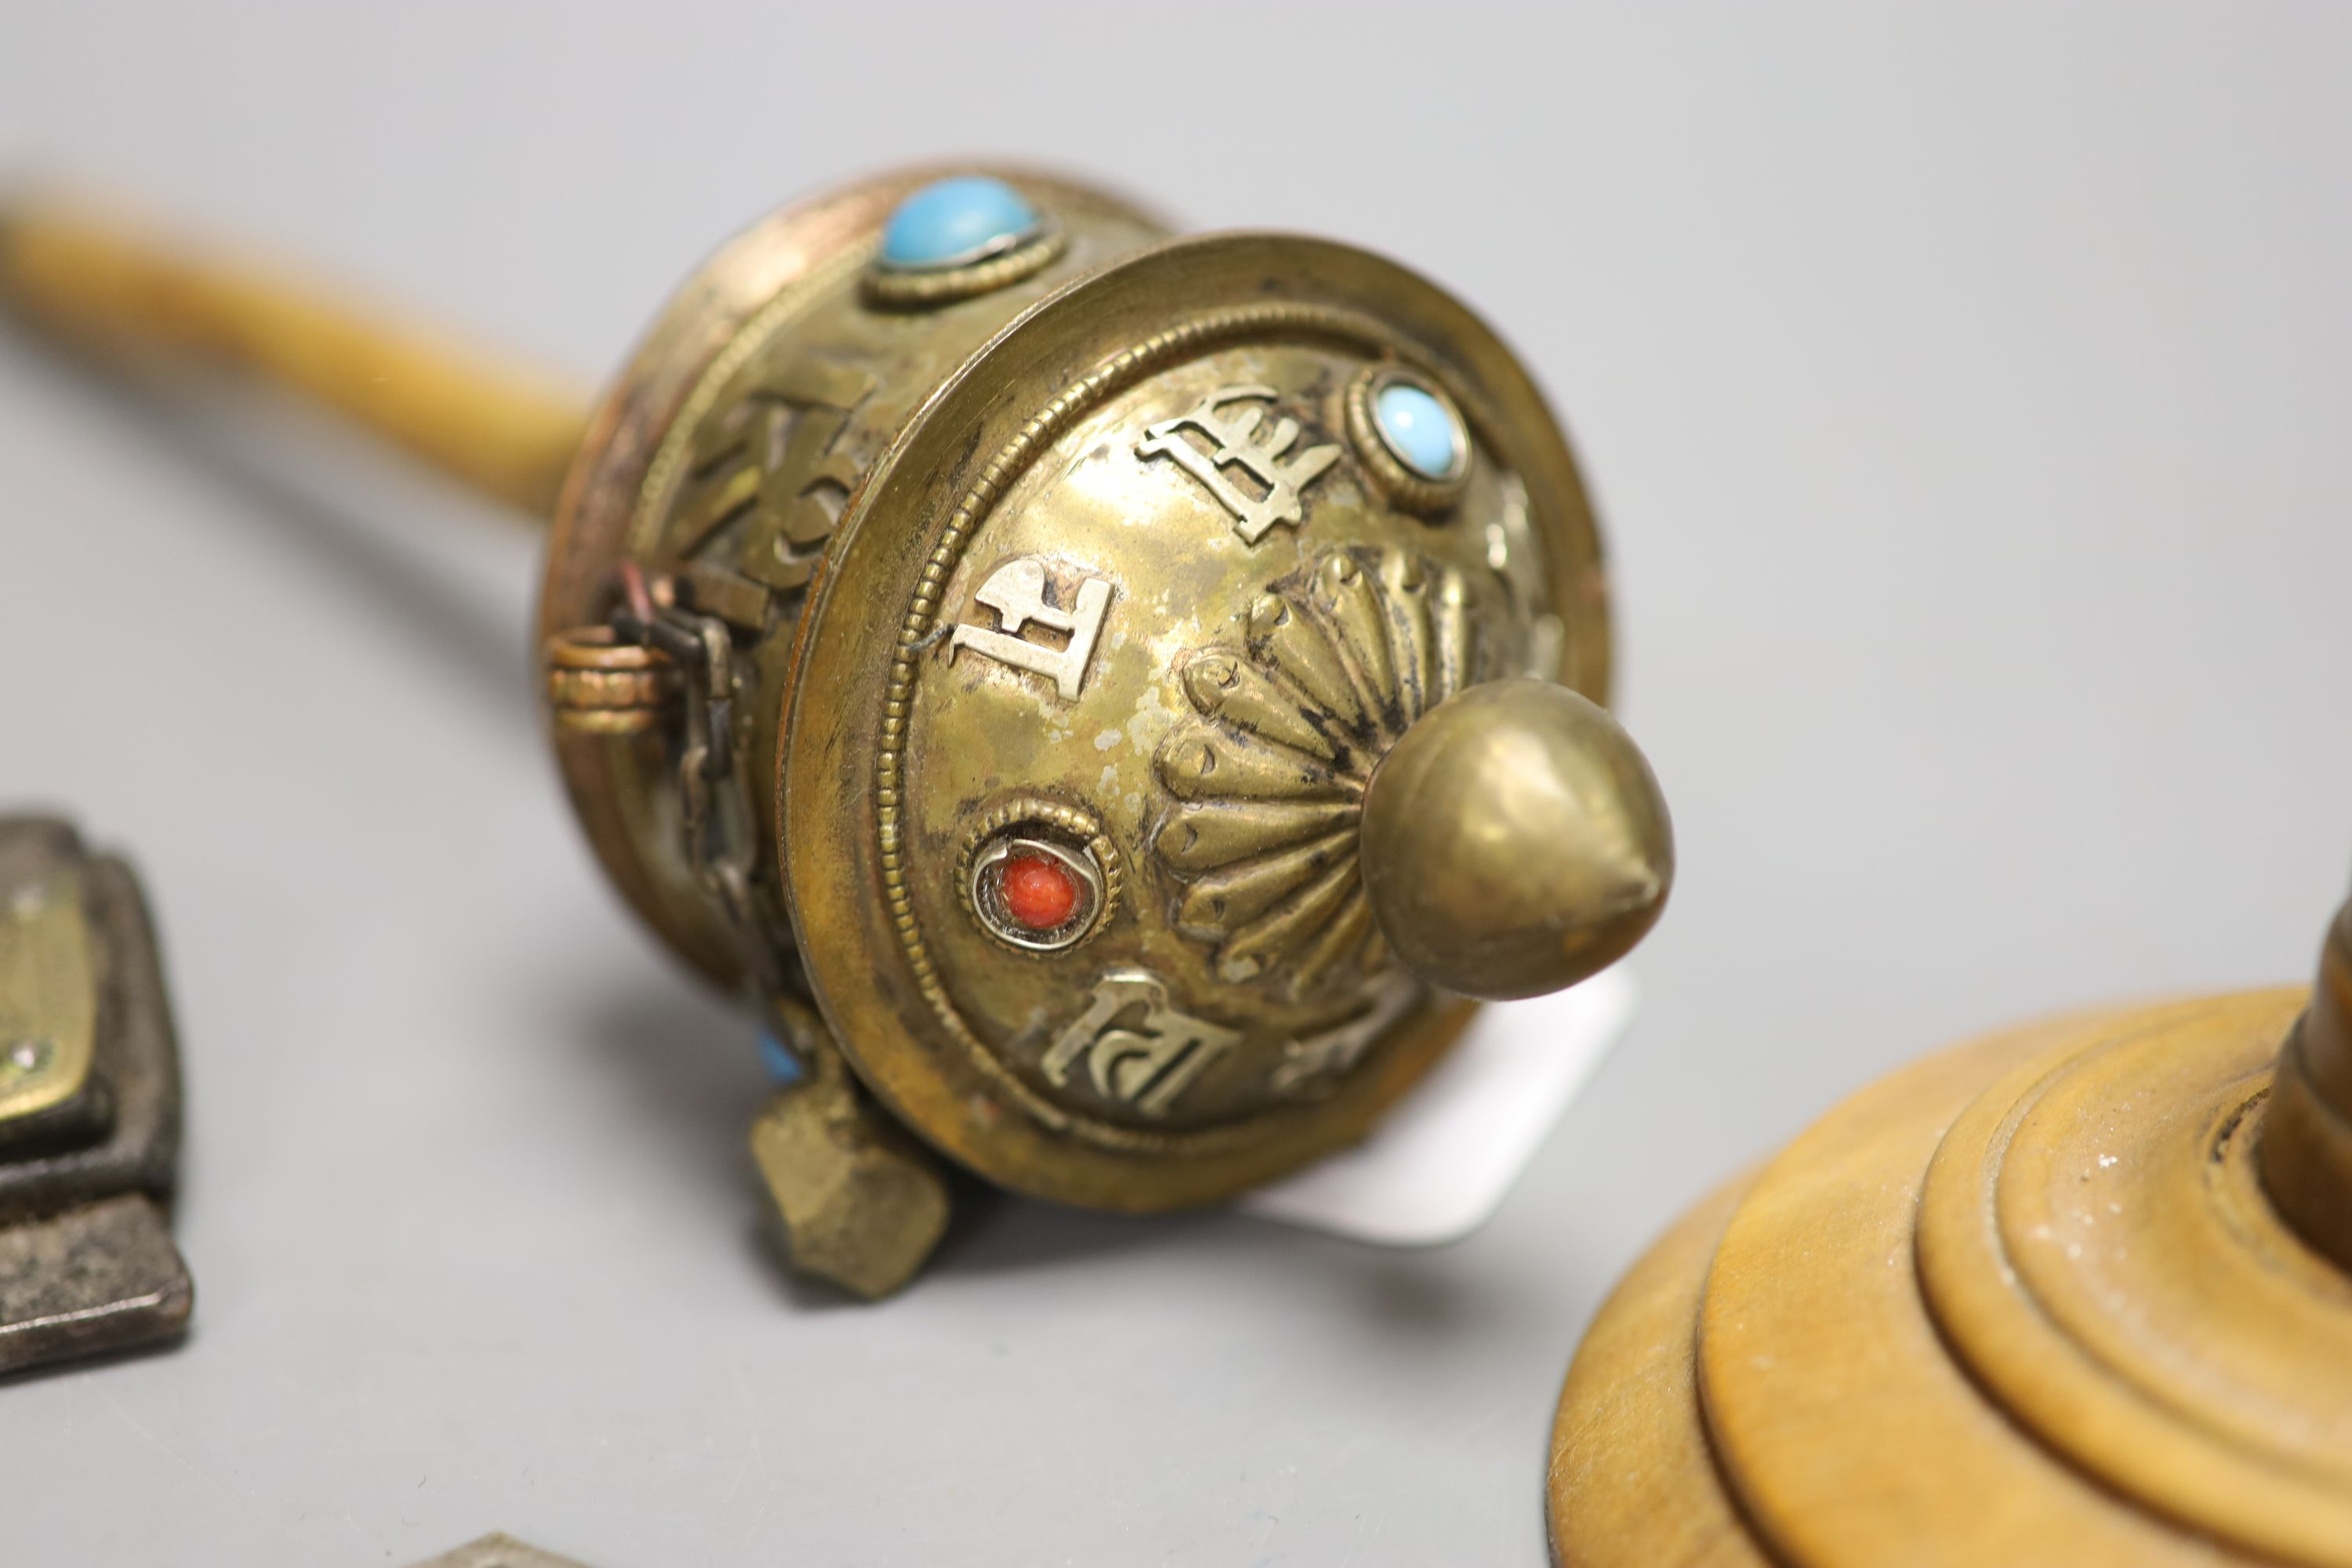 A Tibetan brass prayer wheel, inset with cabochons, with turned wood handle and four other items, - Image 3 of 4